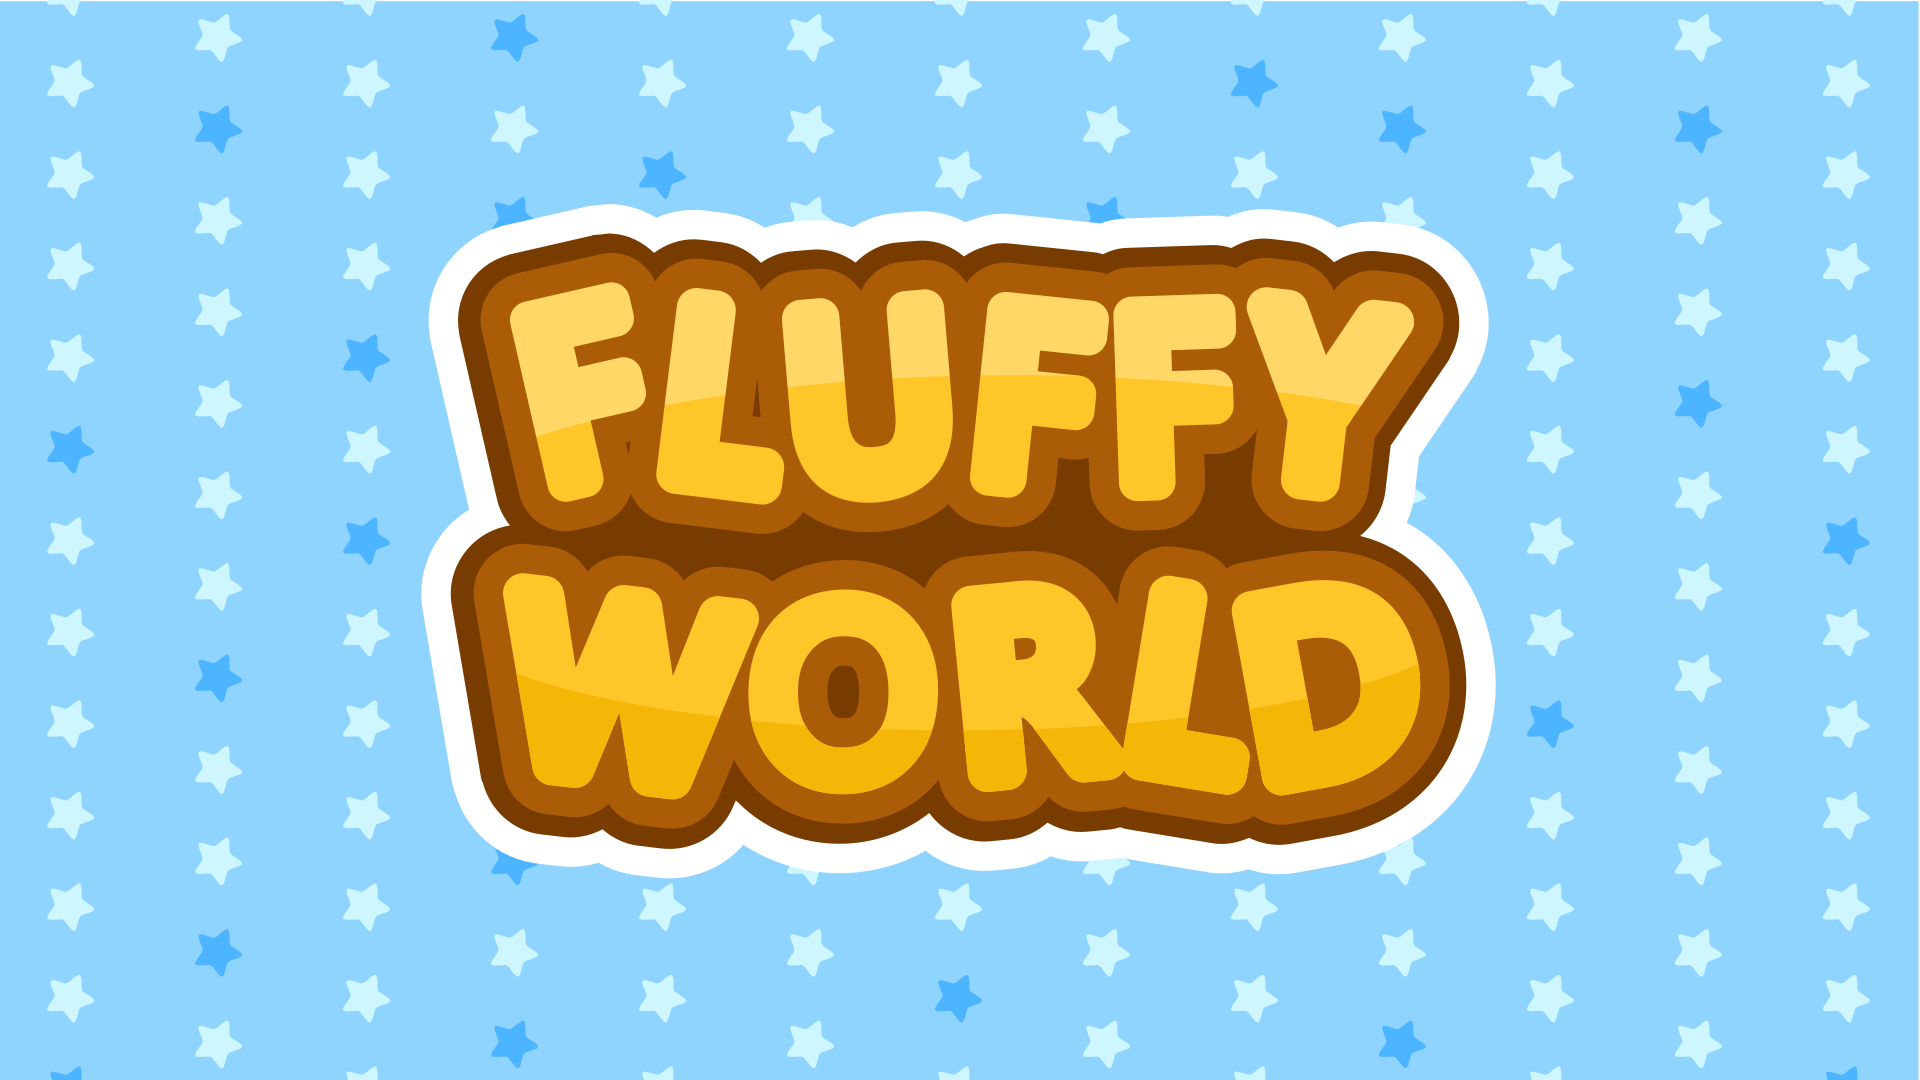 Fluffy World User Interface